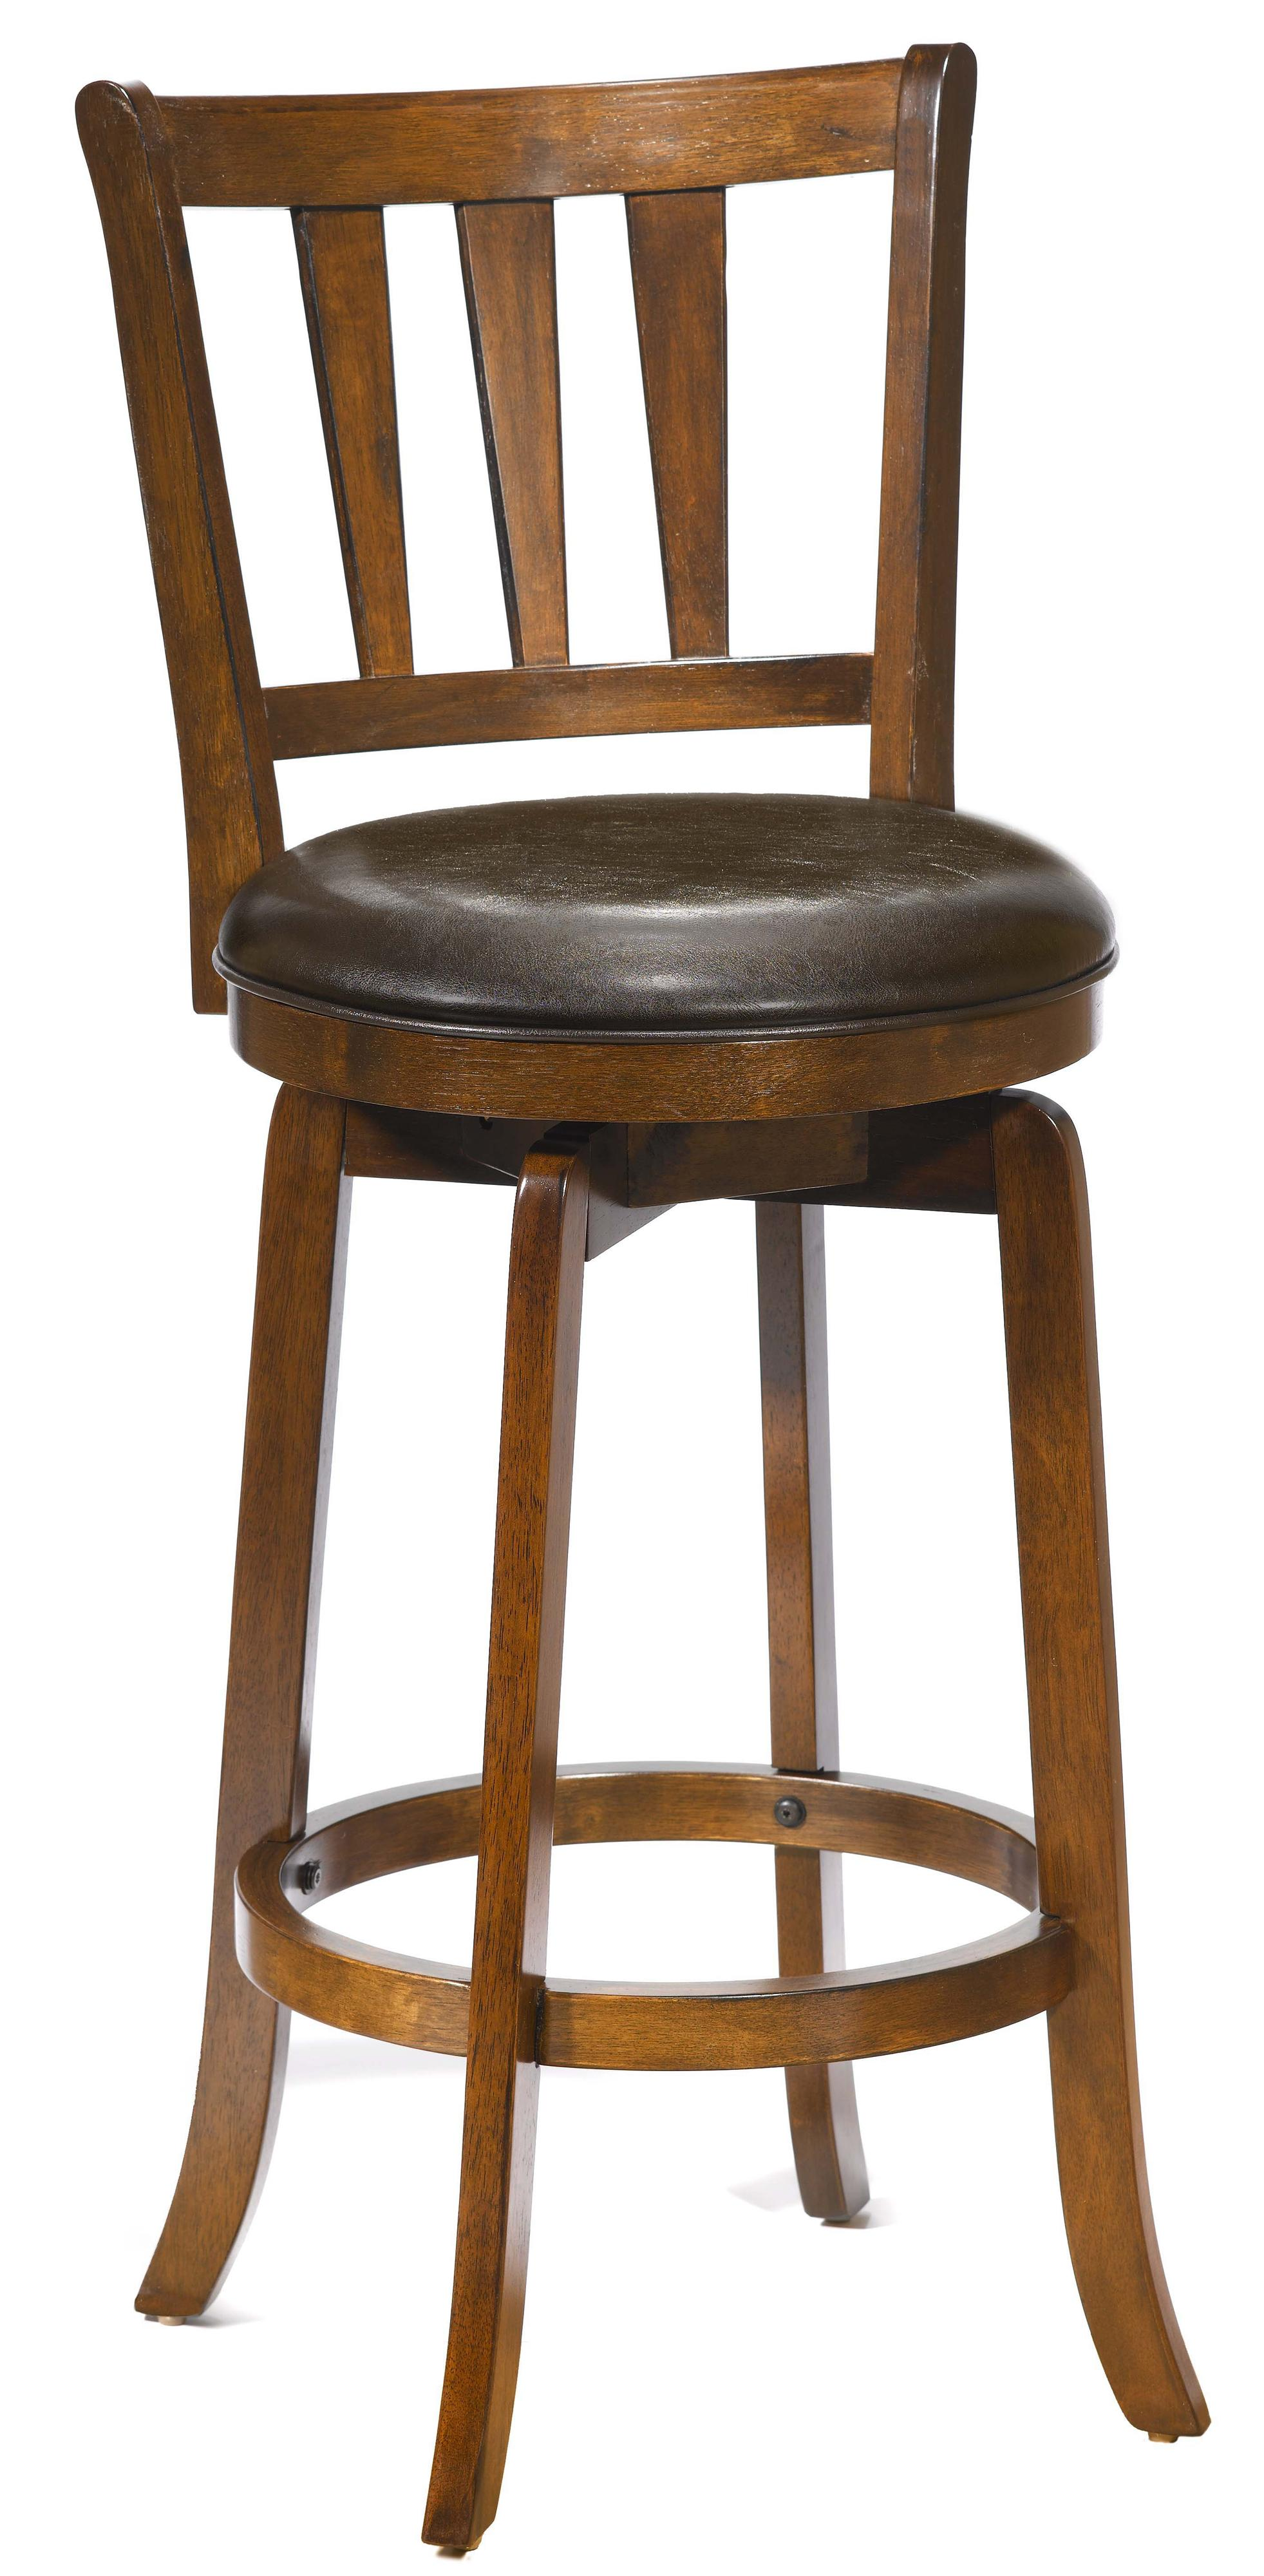 Hillsdale Wood Stools 26 Quot Counter Height Presque Isle